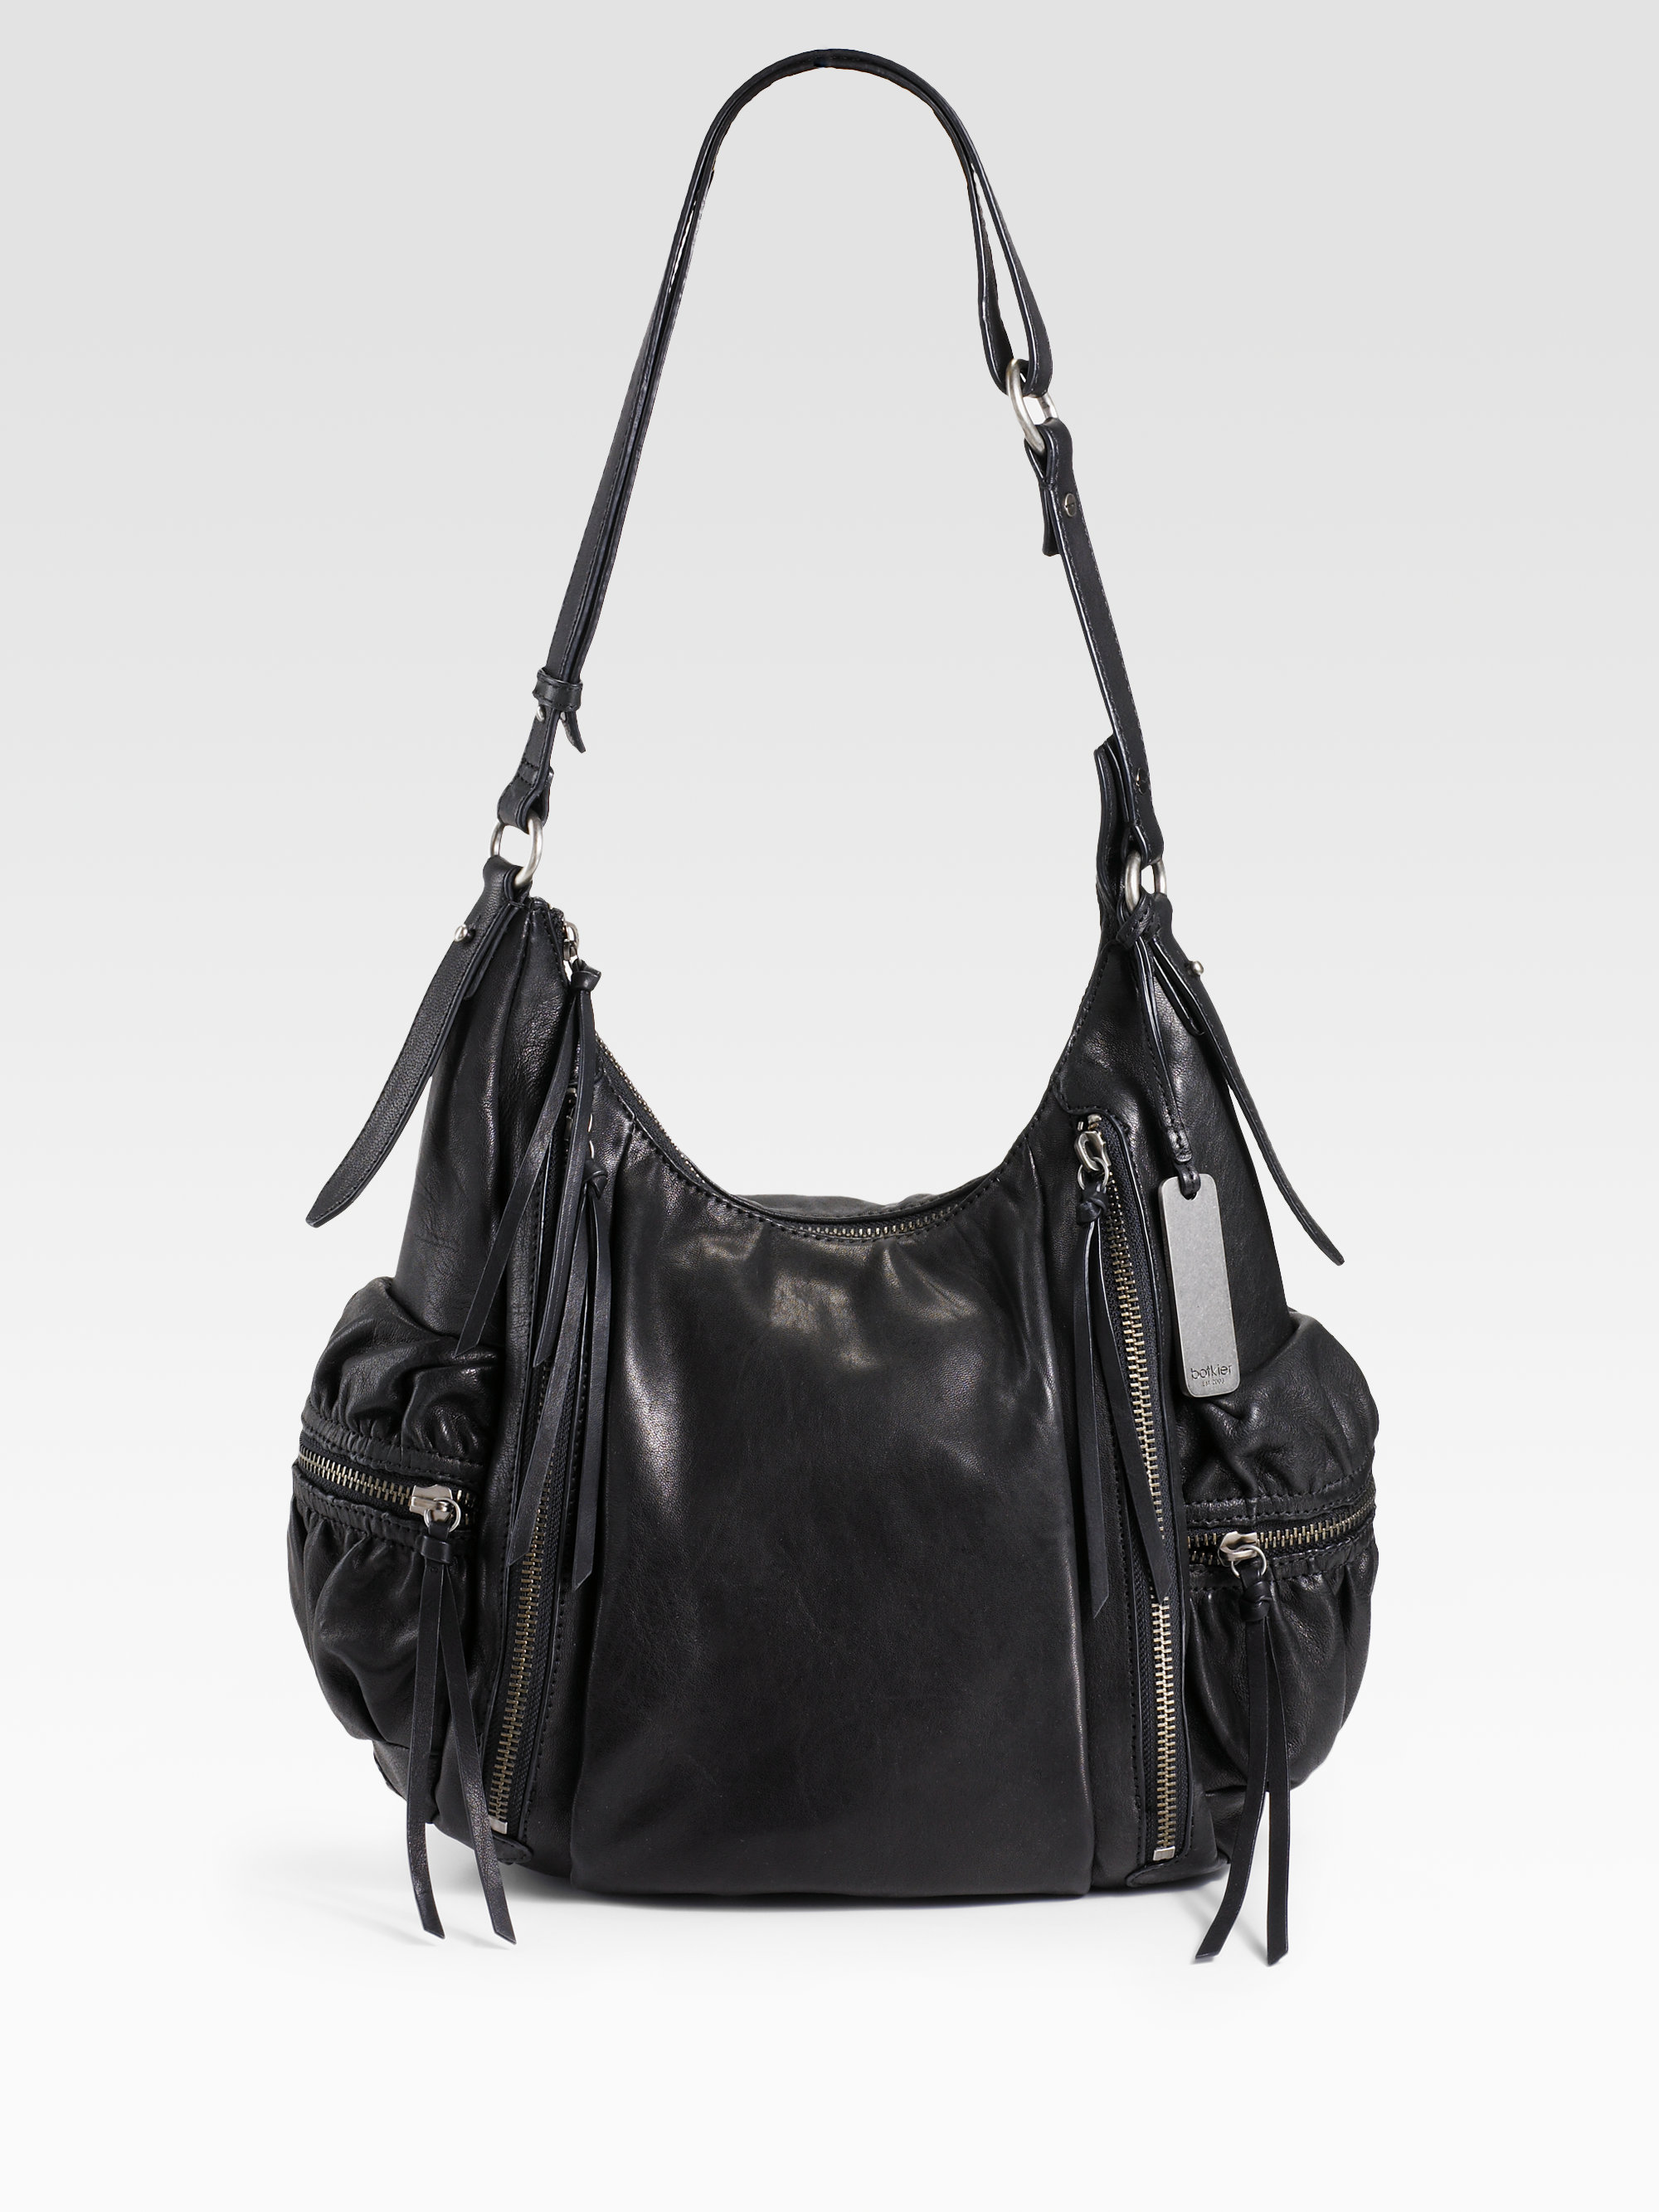 Botkier Aiden Crossbody Hobo in Black | Lyst